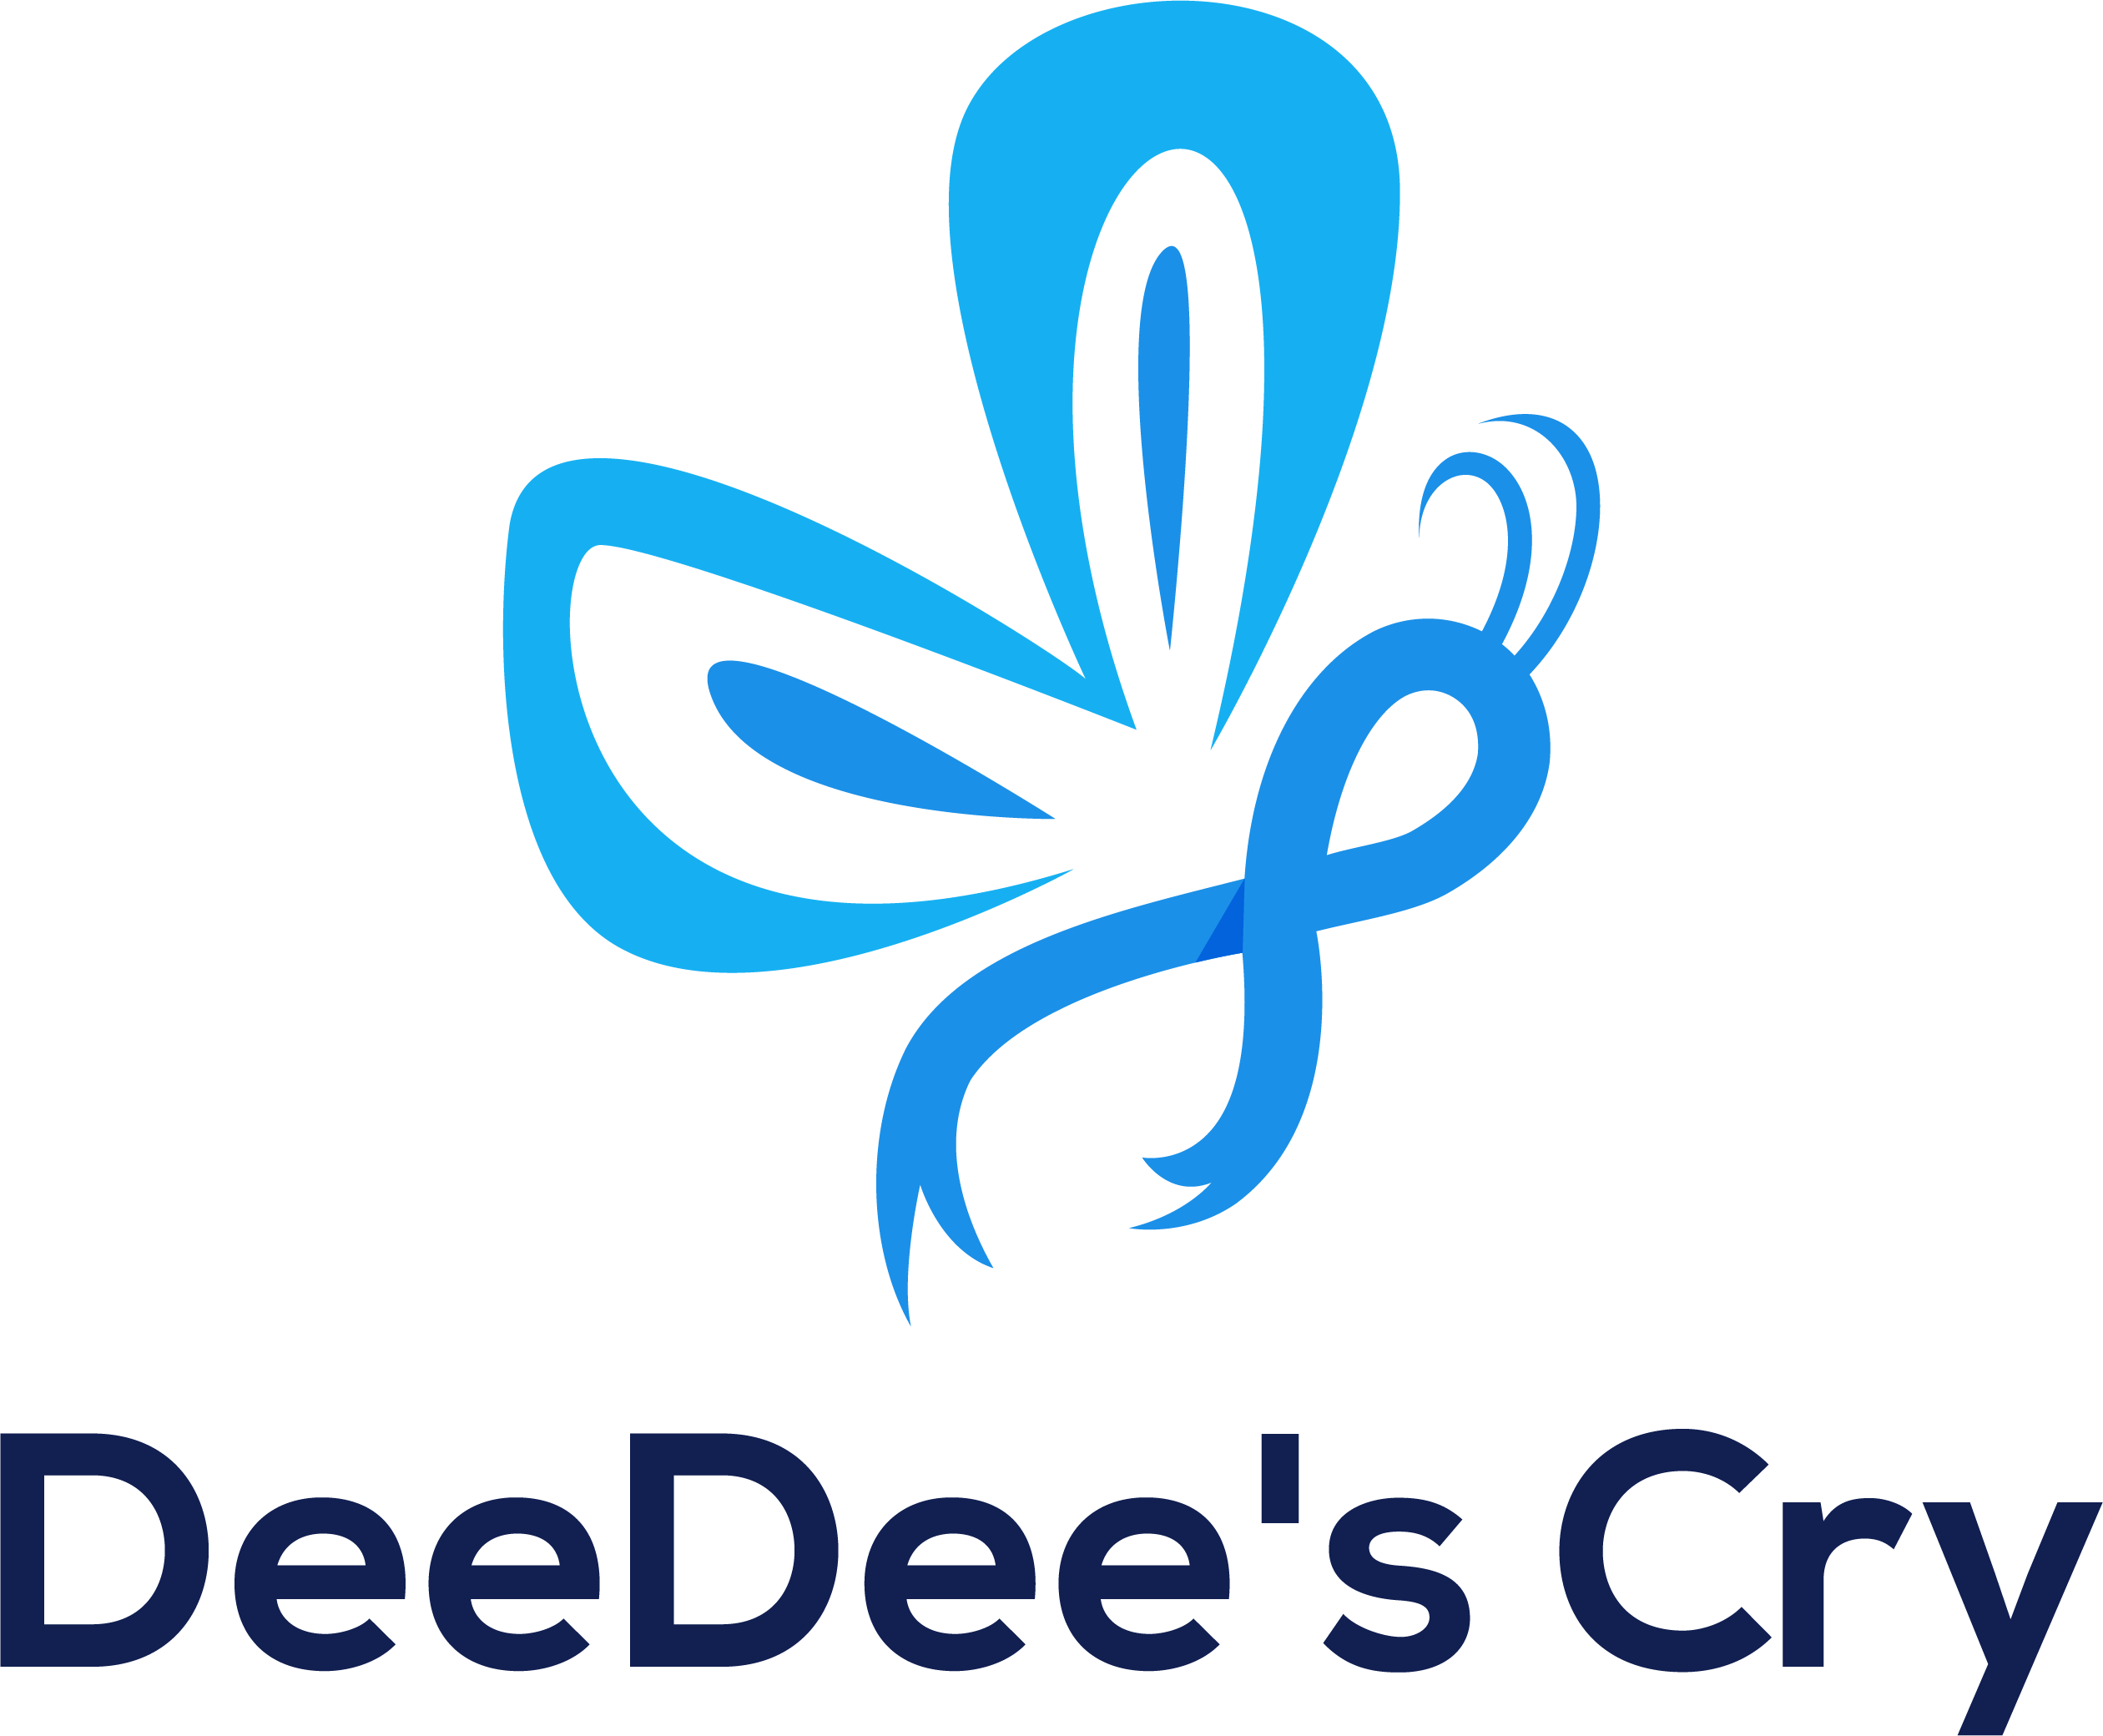 DeeDee's Cry